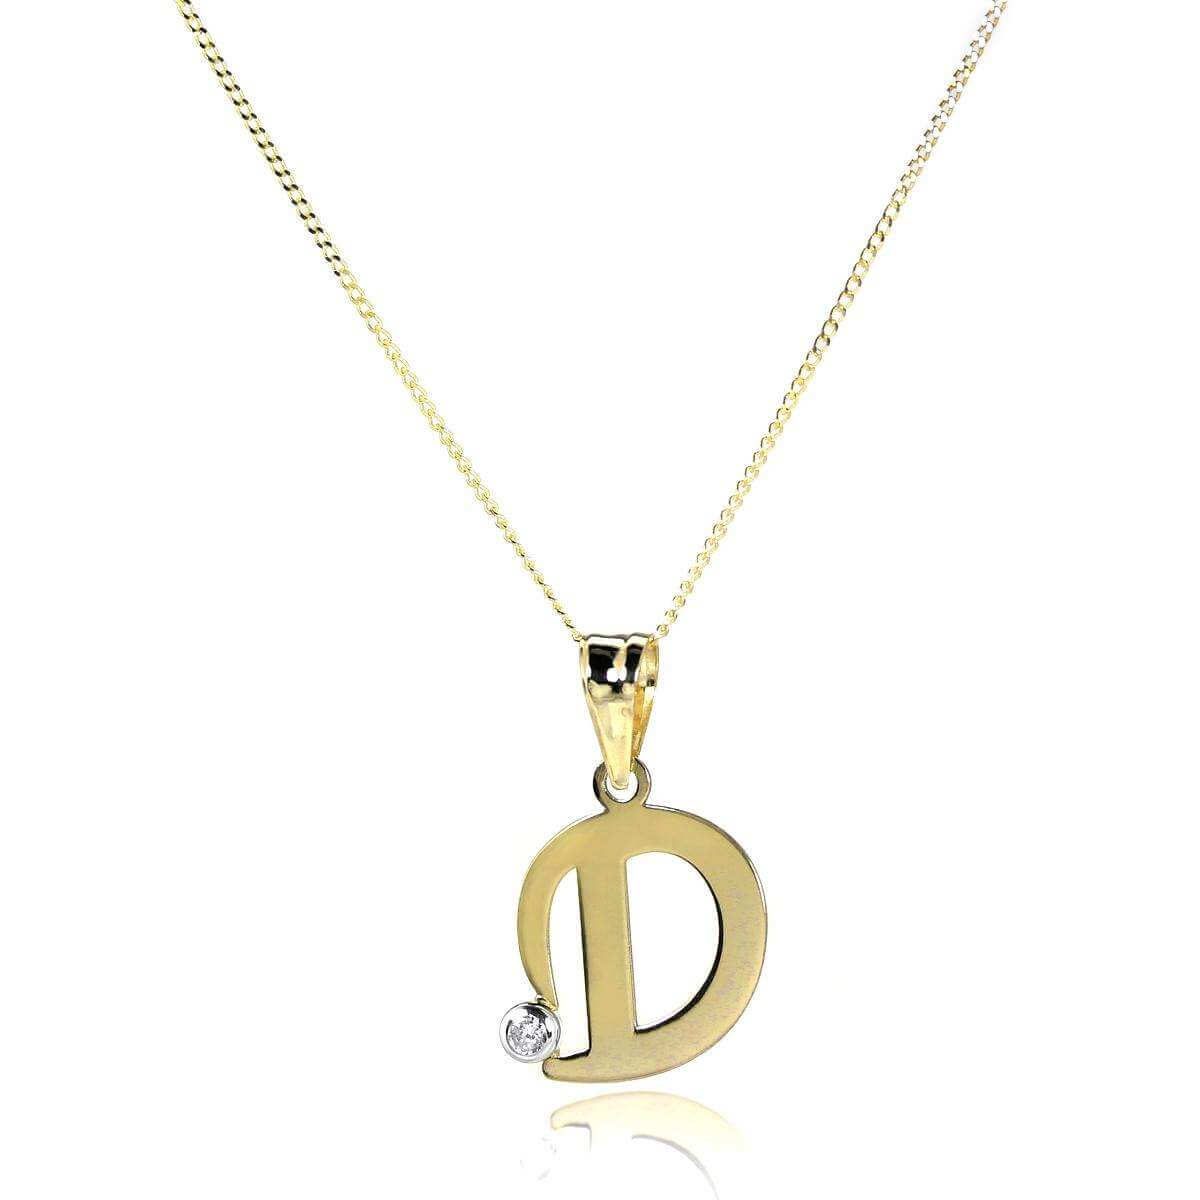 9ct Gold Letter D Pendant with CZ Crystal